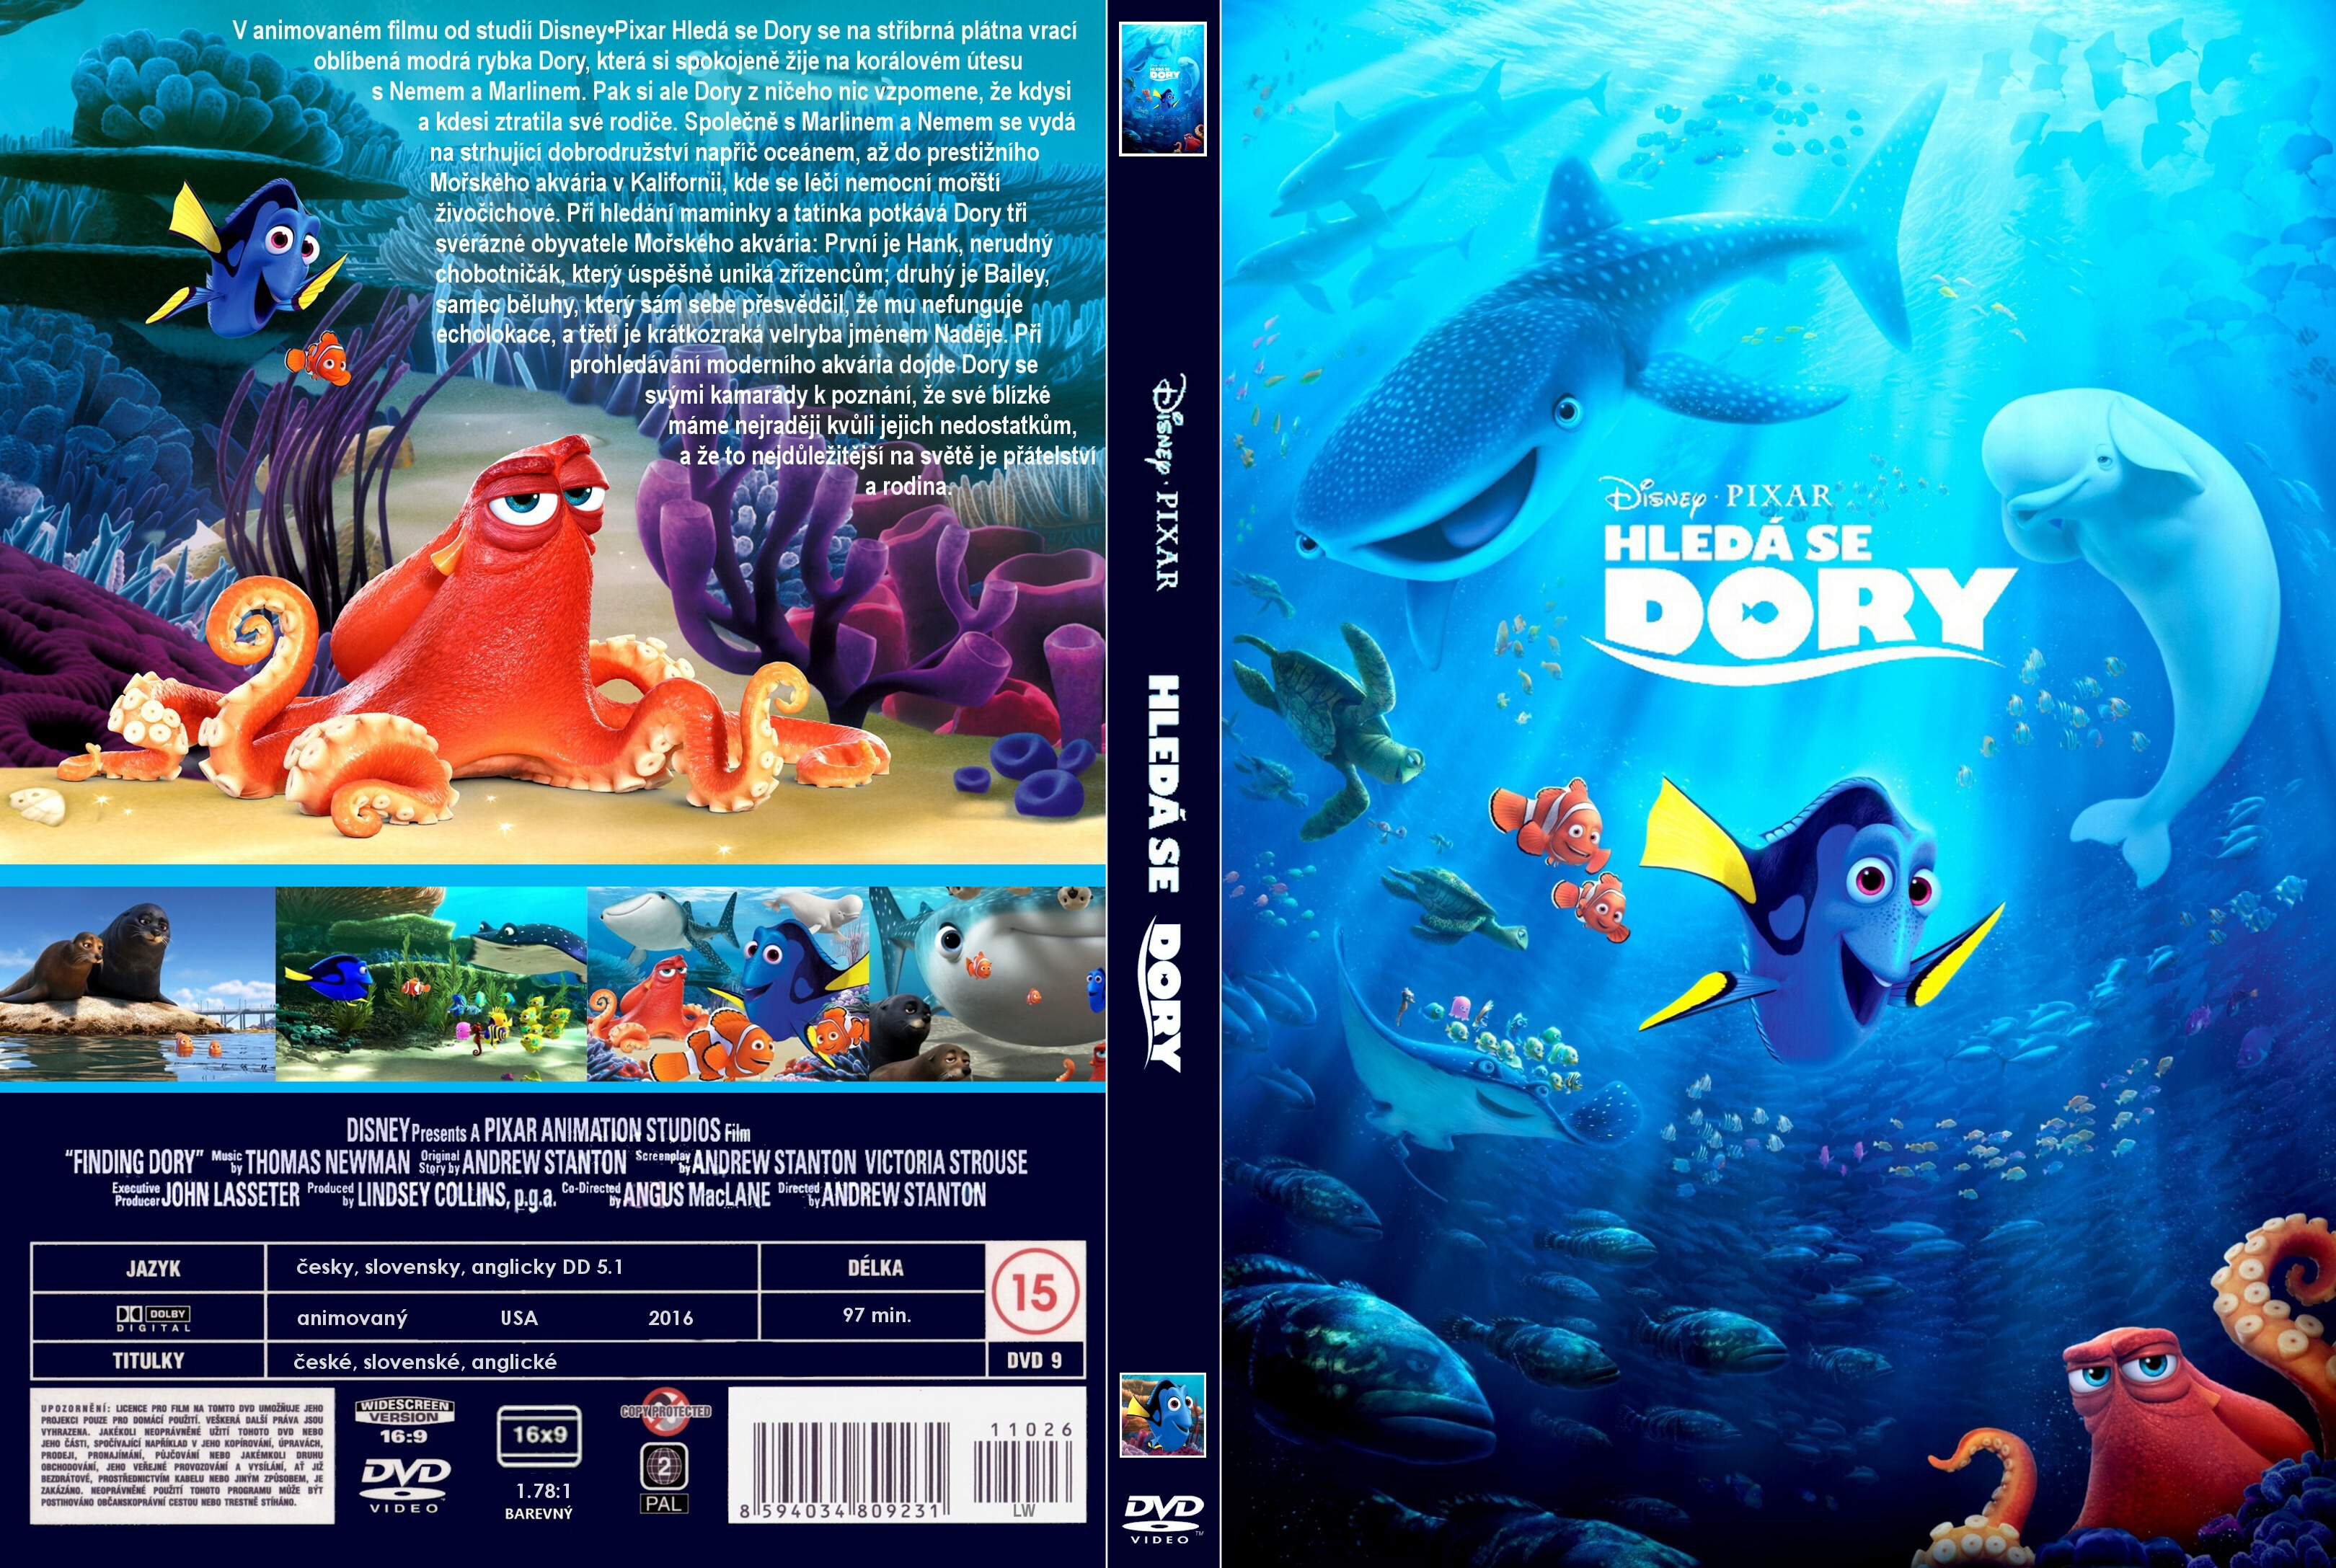 Covers Box Sk Finding Dory 2016 High Quality Dvd Blueray Movie